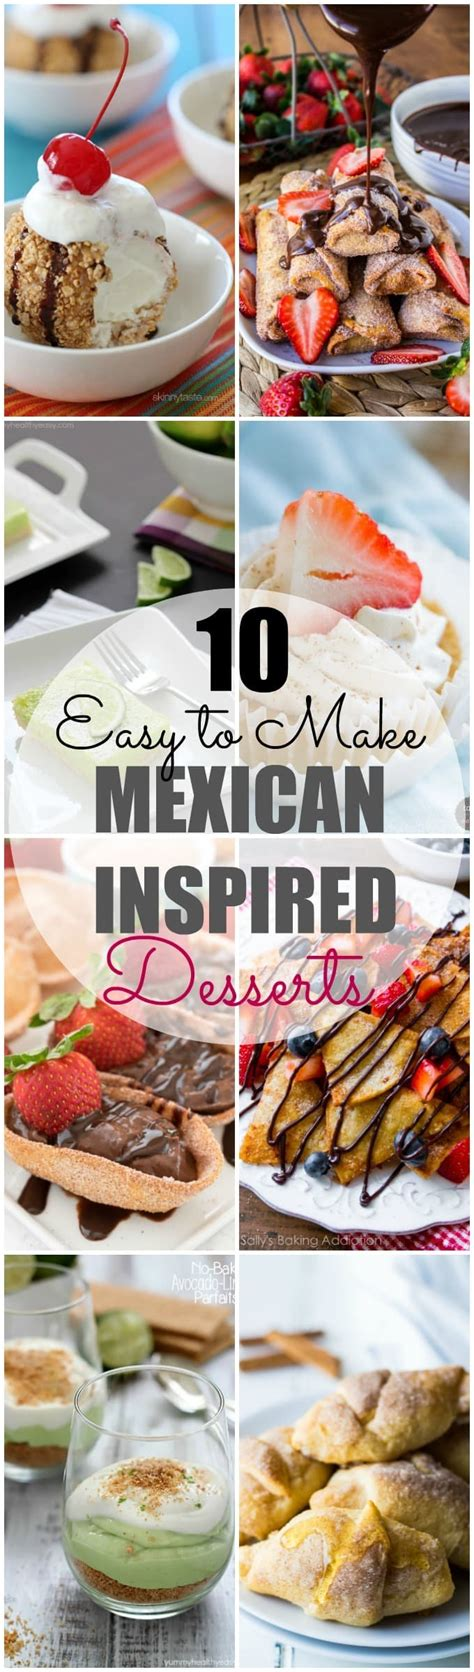 A Mexican Inspired Dessert For Cinco De Mayo by 10 Easy To Make Mexican Inspired Desserts Healthy Easy